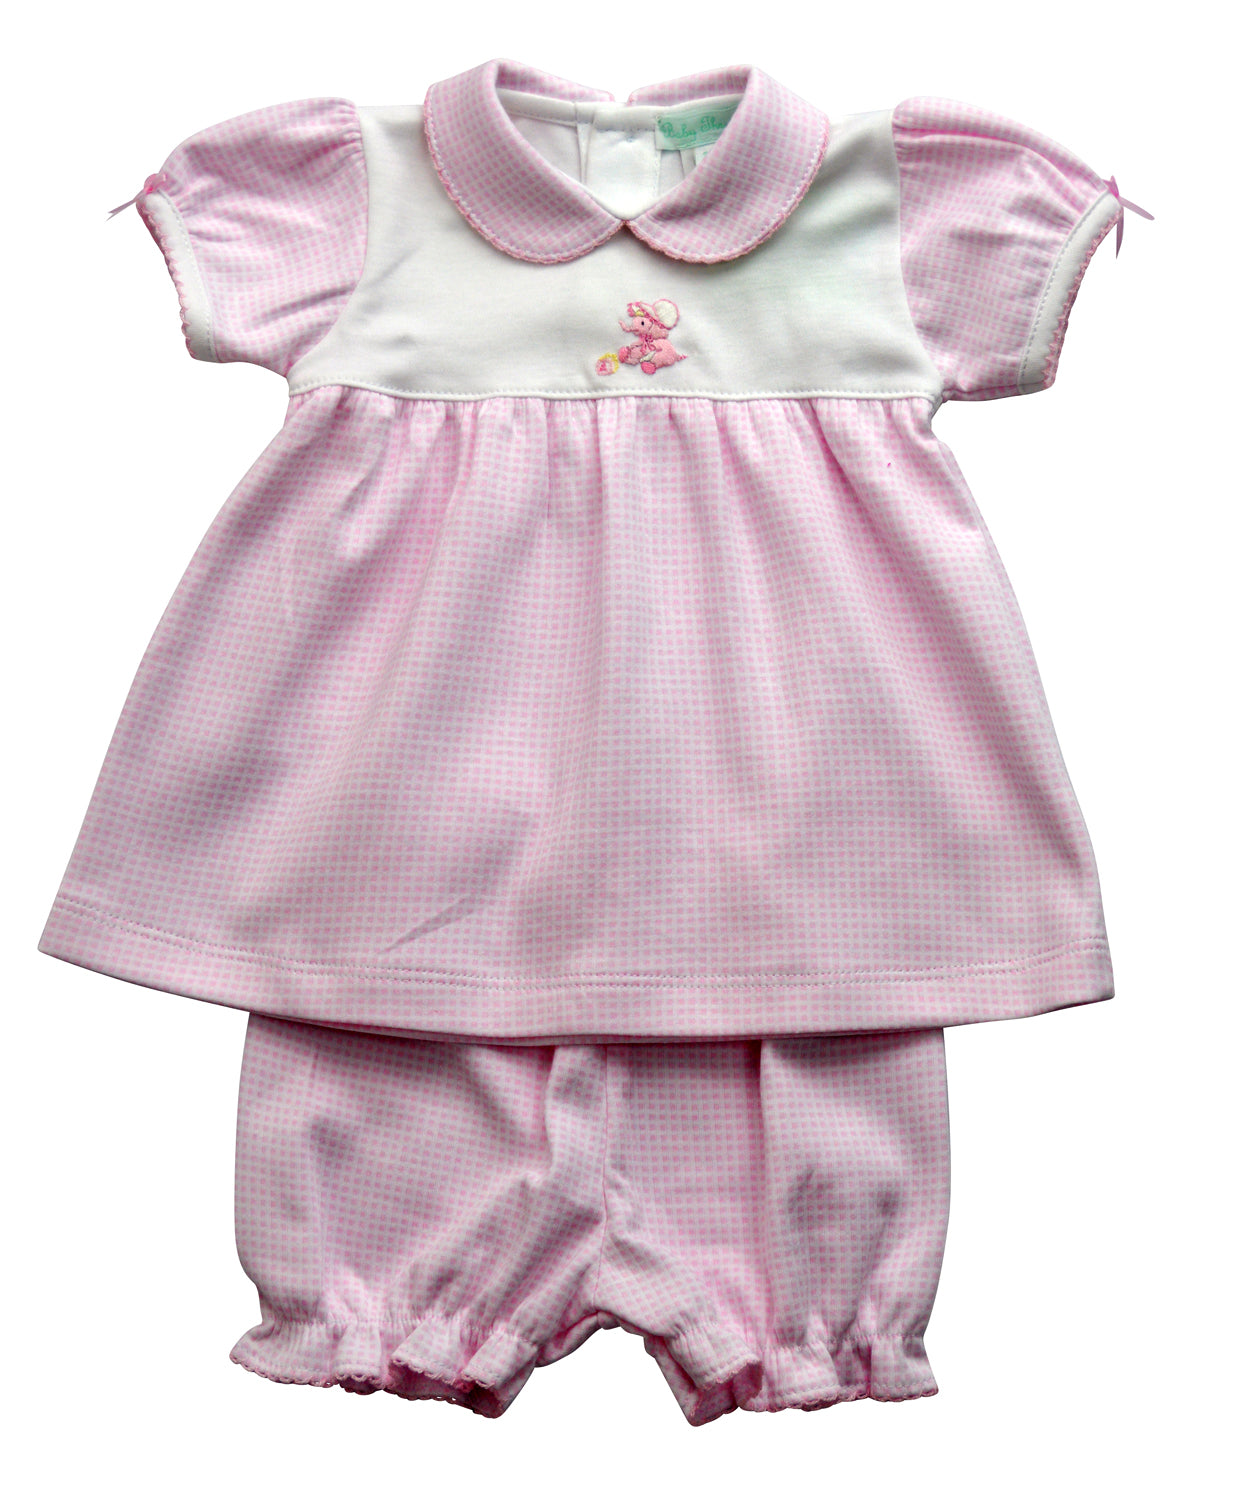 Elephant hand embroidered pink checks baby dress size 3m